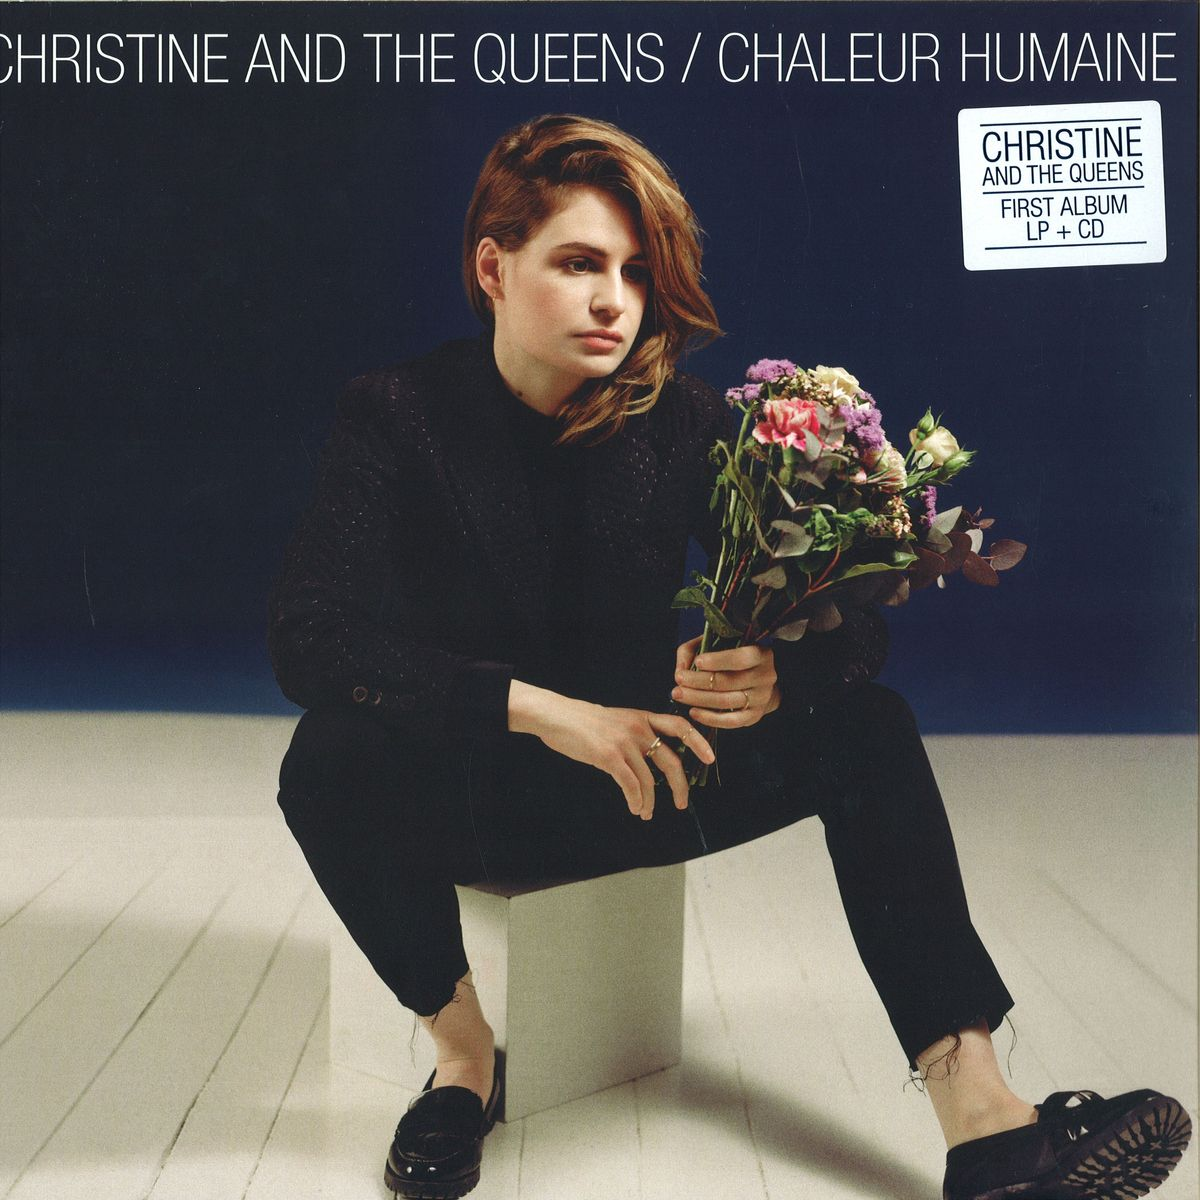 Christine And The Queens – Chaleur Humaine (Because Music)